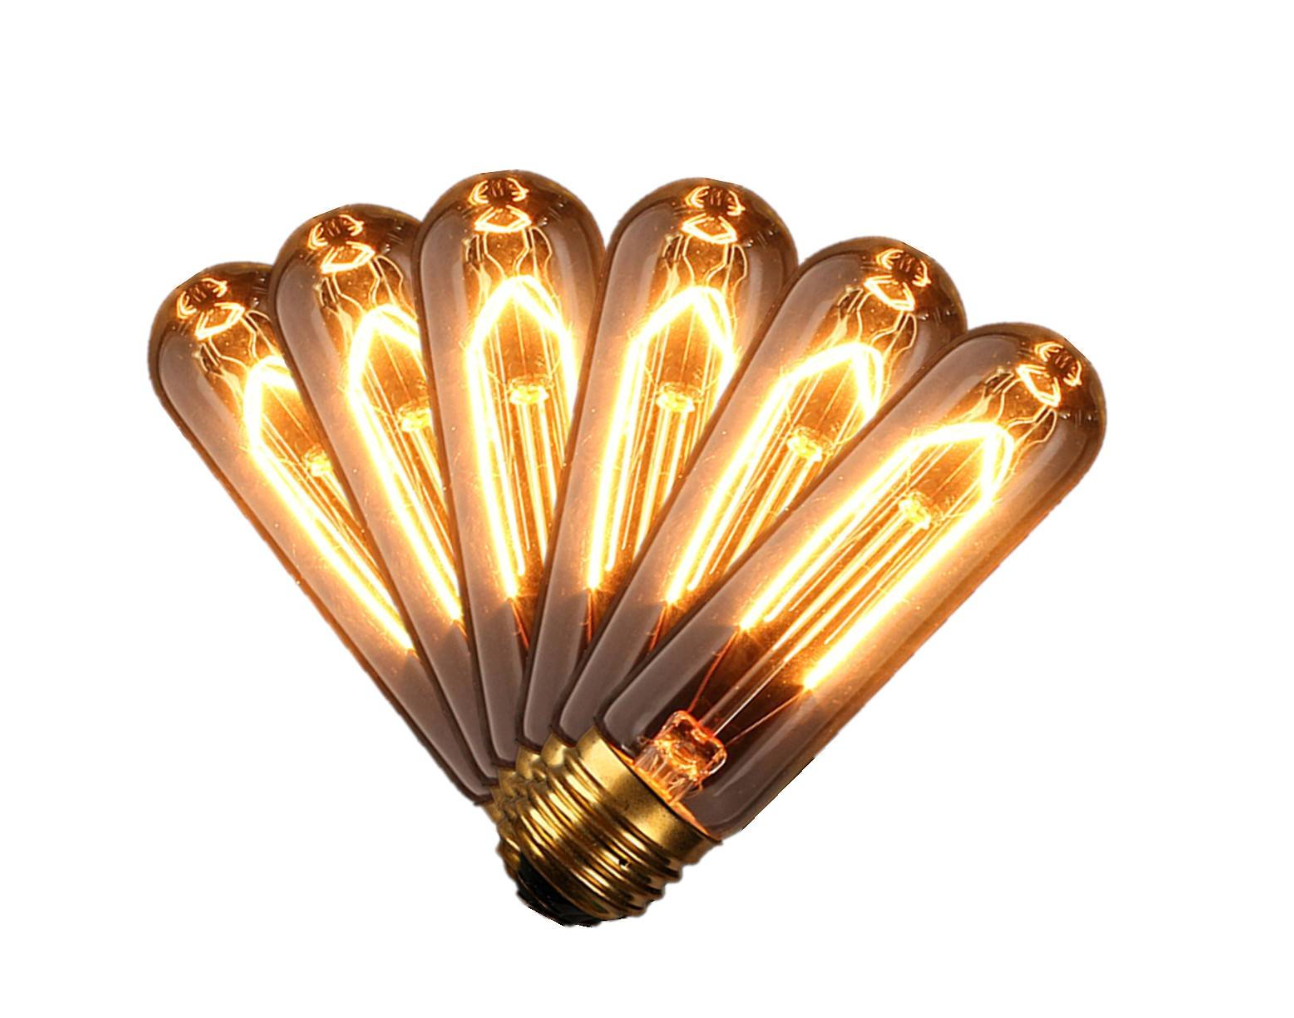 KINGSO 6 pack of E27 T10 60W Vintage Edison style carbon filament lightbulbs